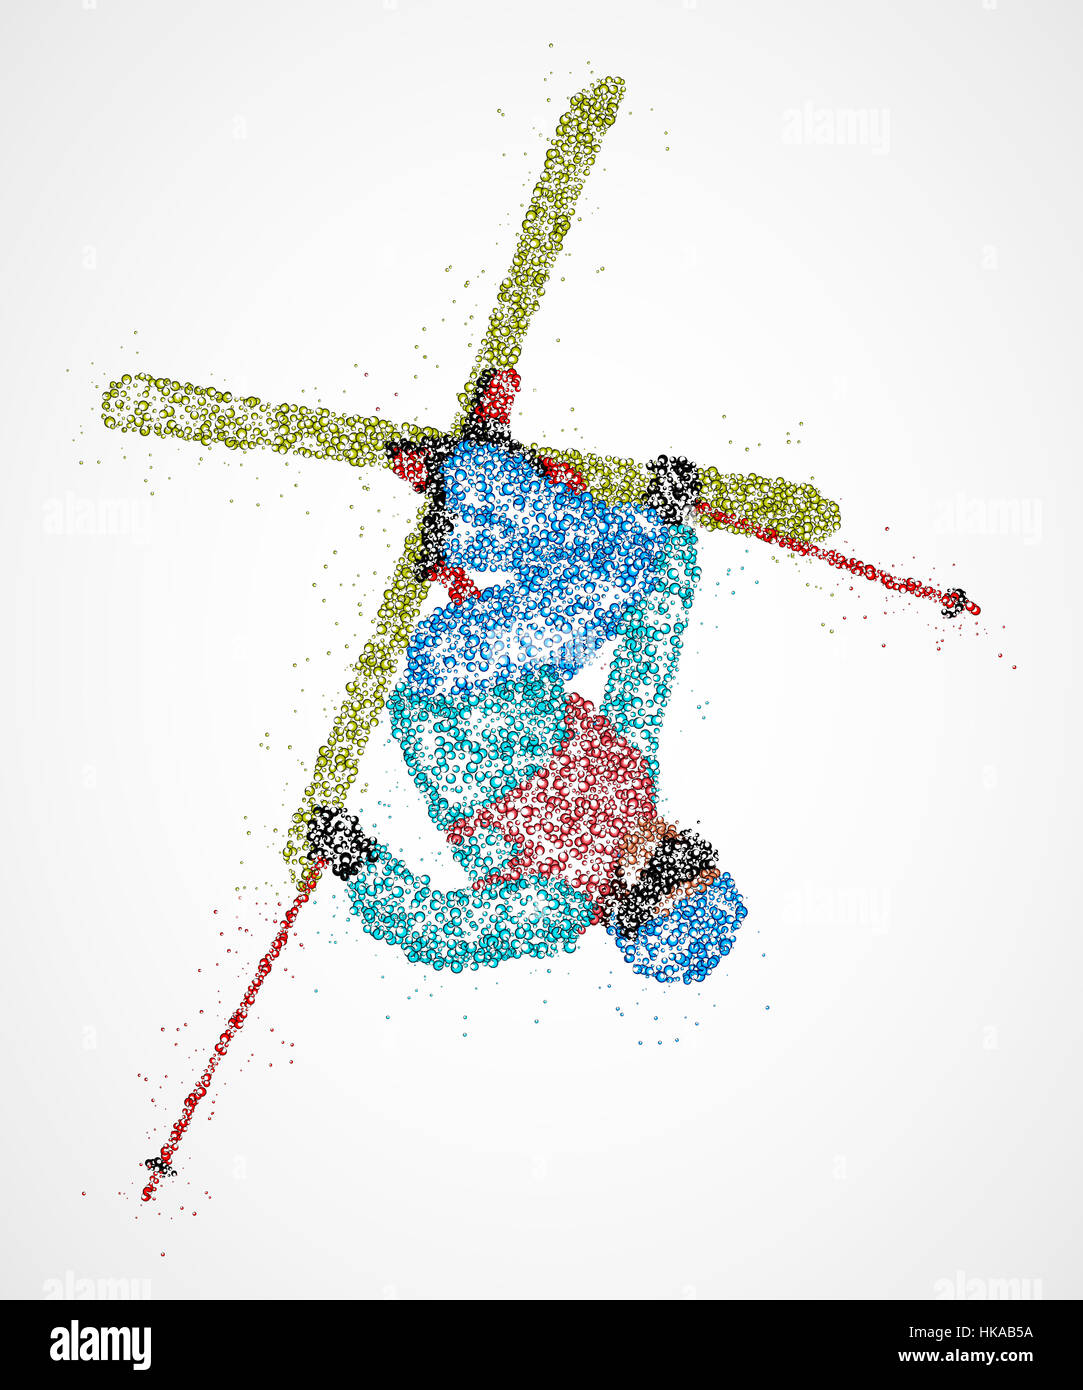 Abstract skier jumping out colored circles. Photo illustration. Stock Photo